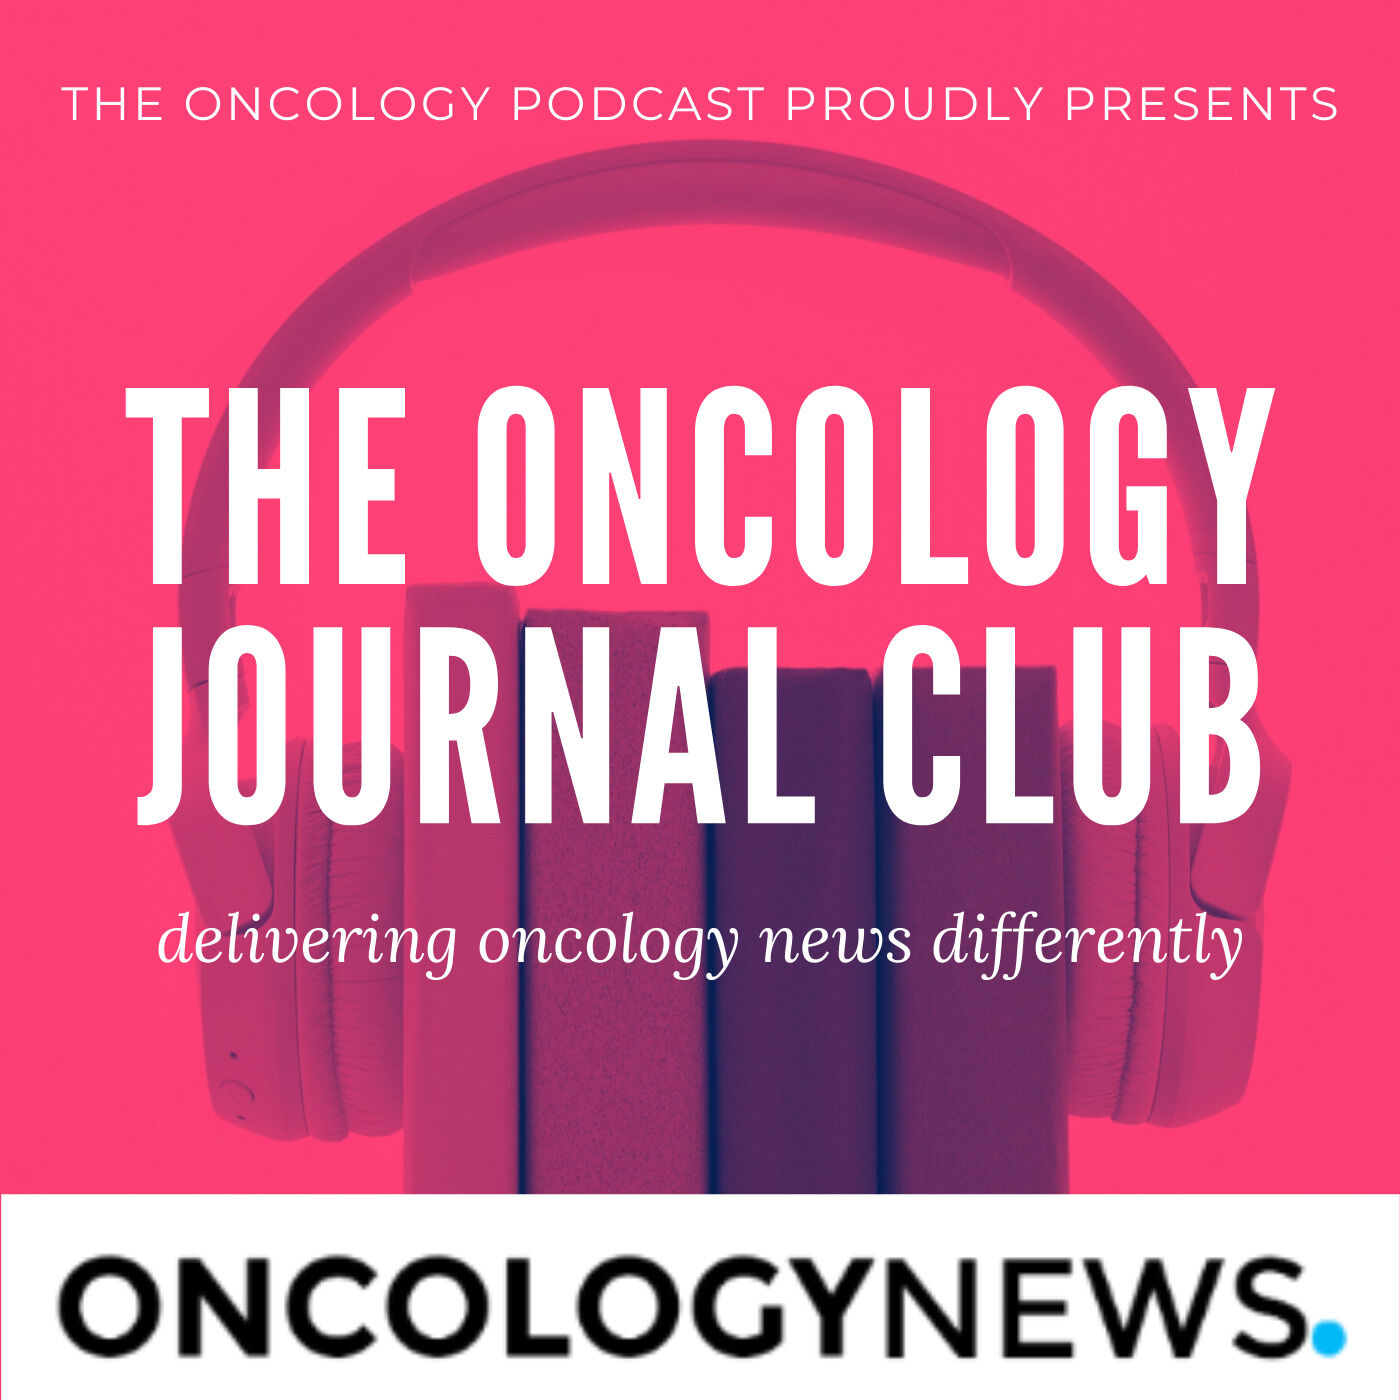 The Oncology Episode 7: Fasting, Stunning Progress in Lung Cancer, Tweeting, Breastfeeding and David Fajgenbaum Interview Highlights